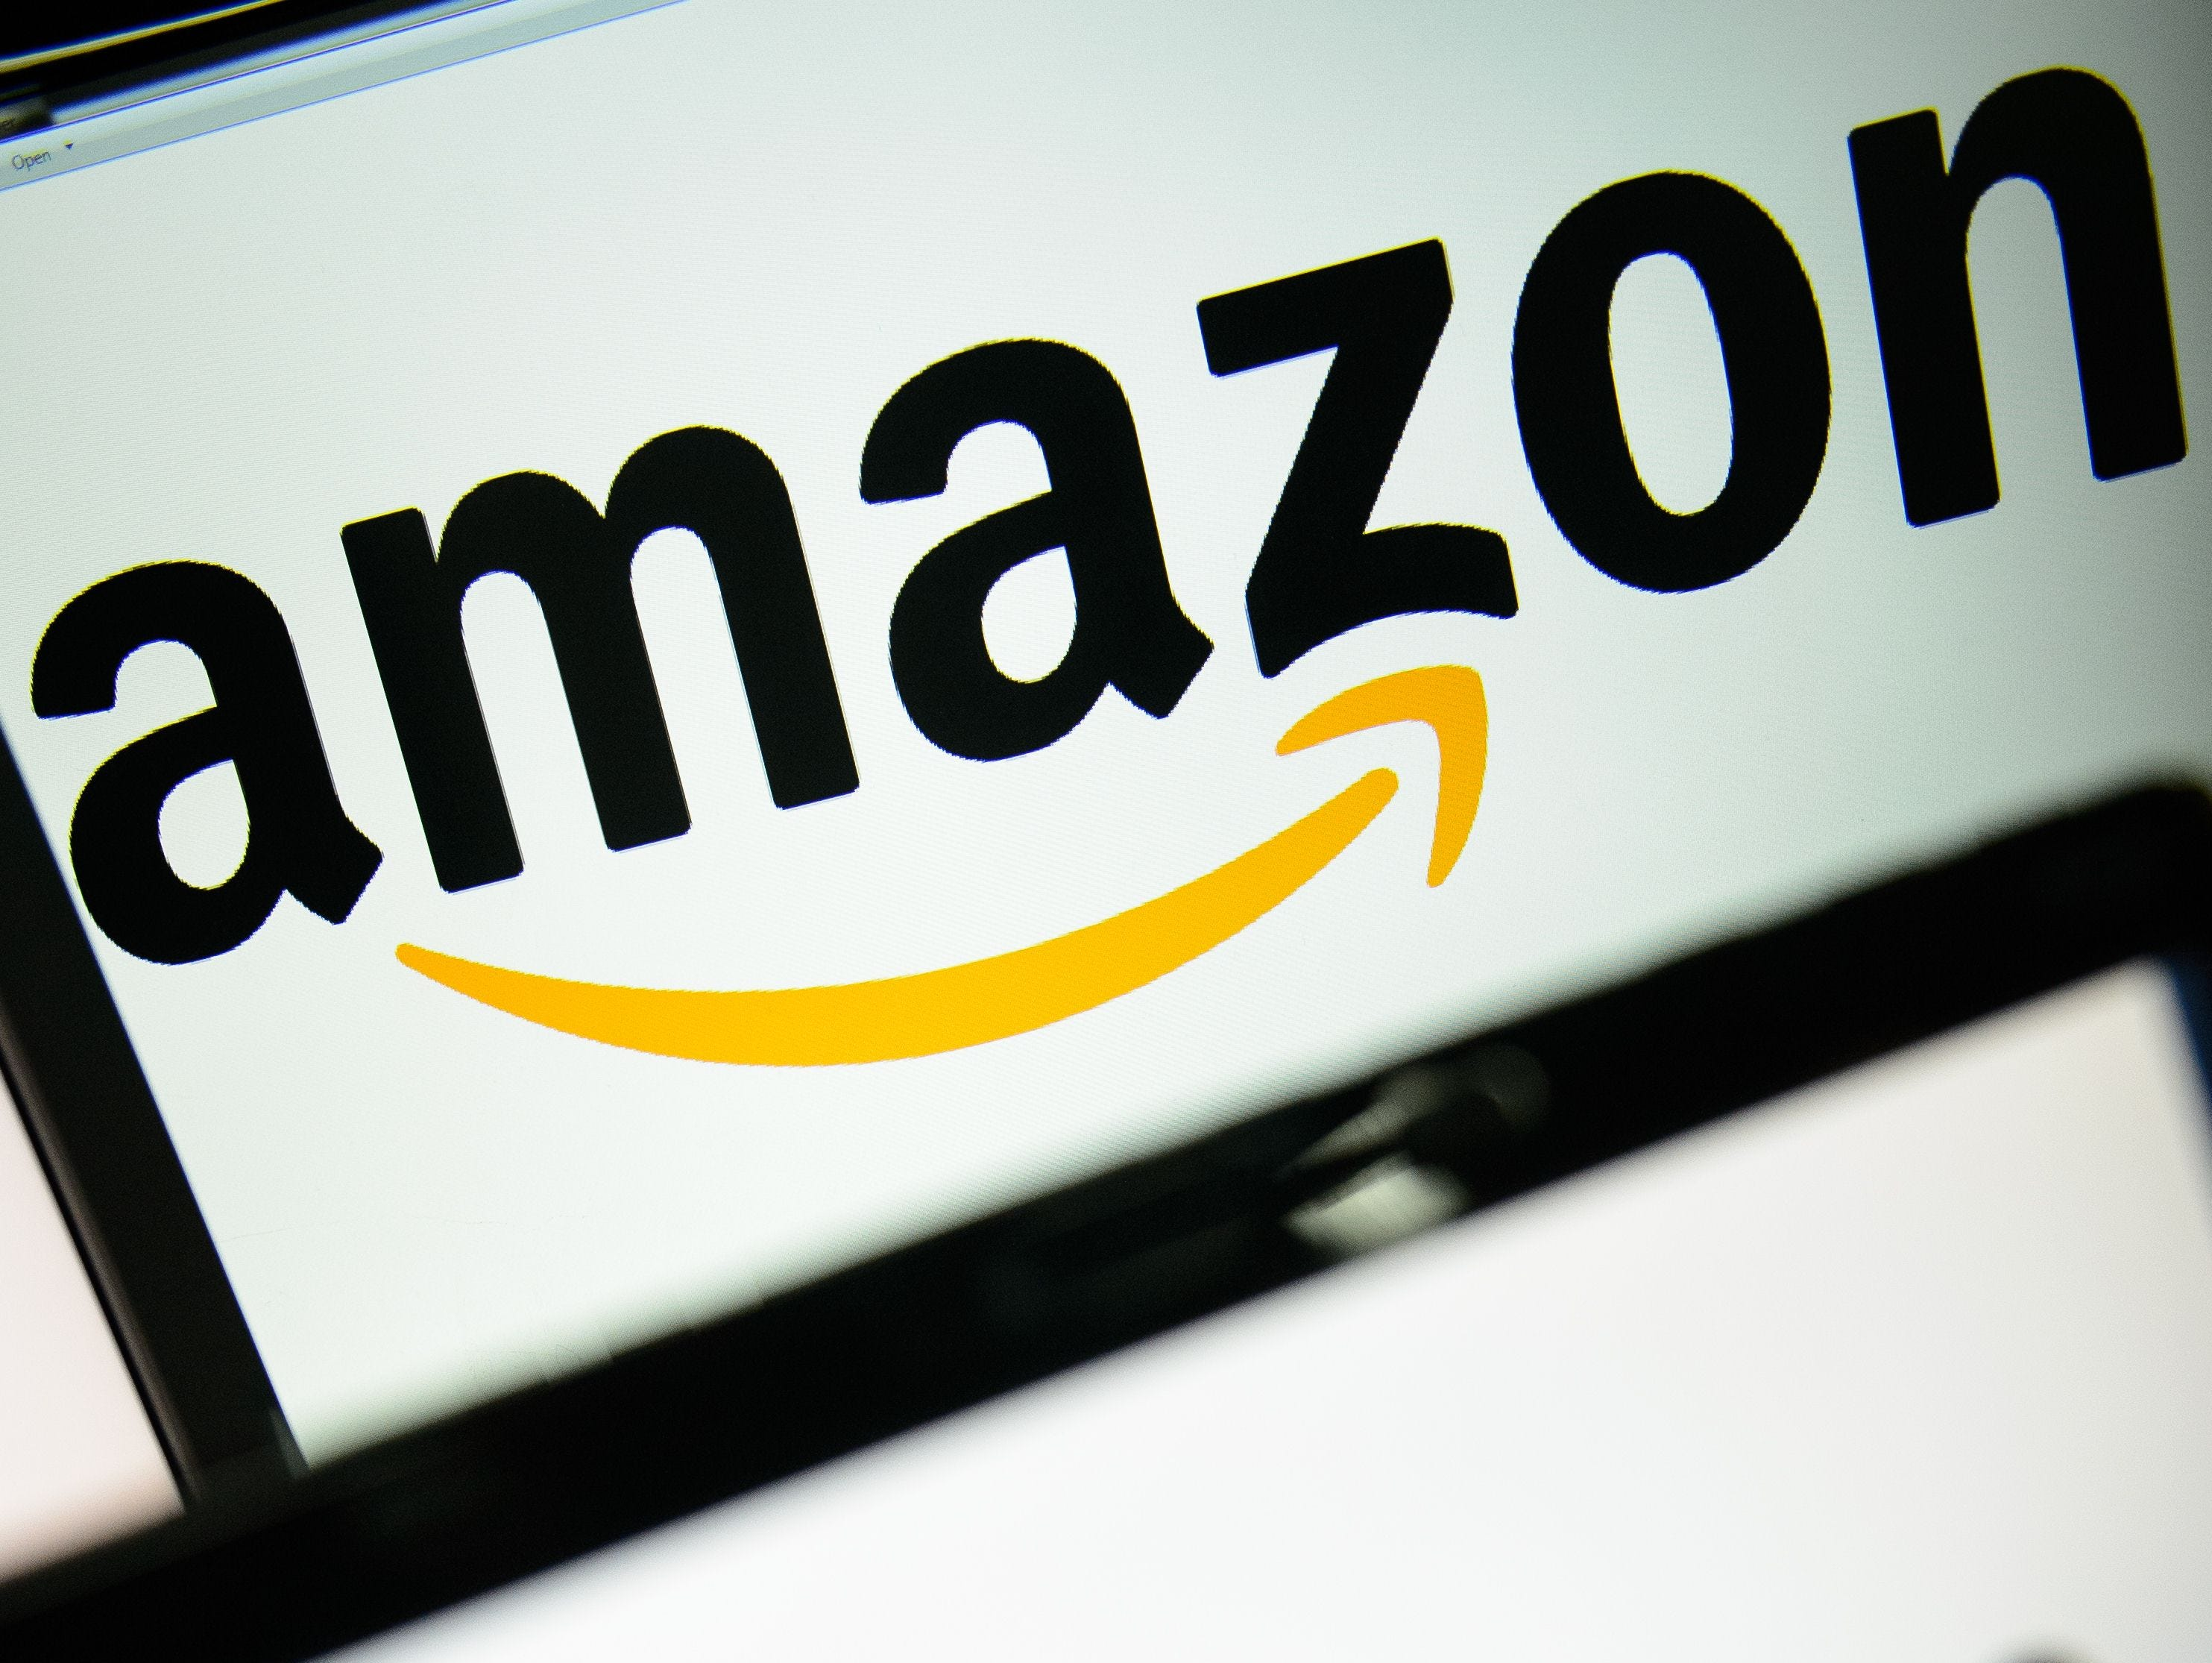 Amazon says Prime Day had more orders than Black Friday and will be repeated next year.